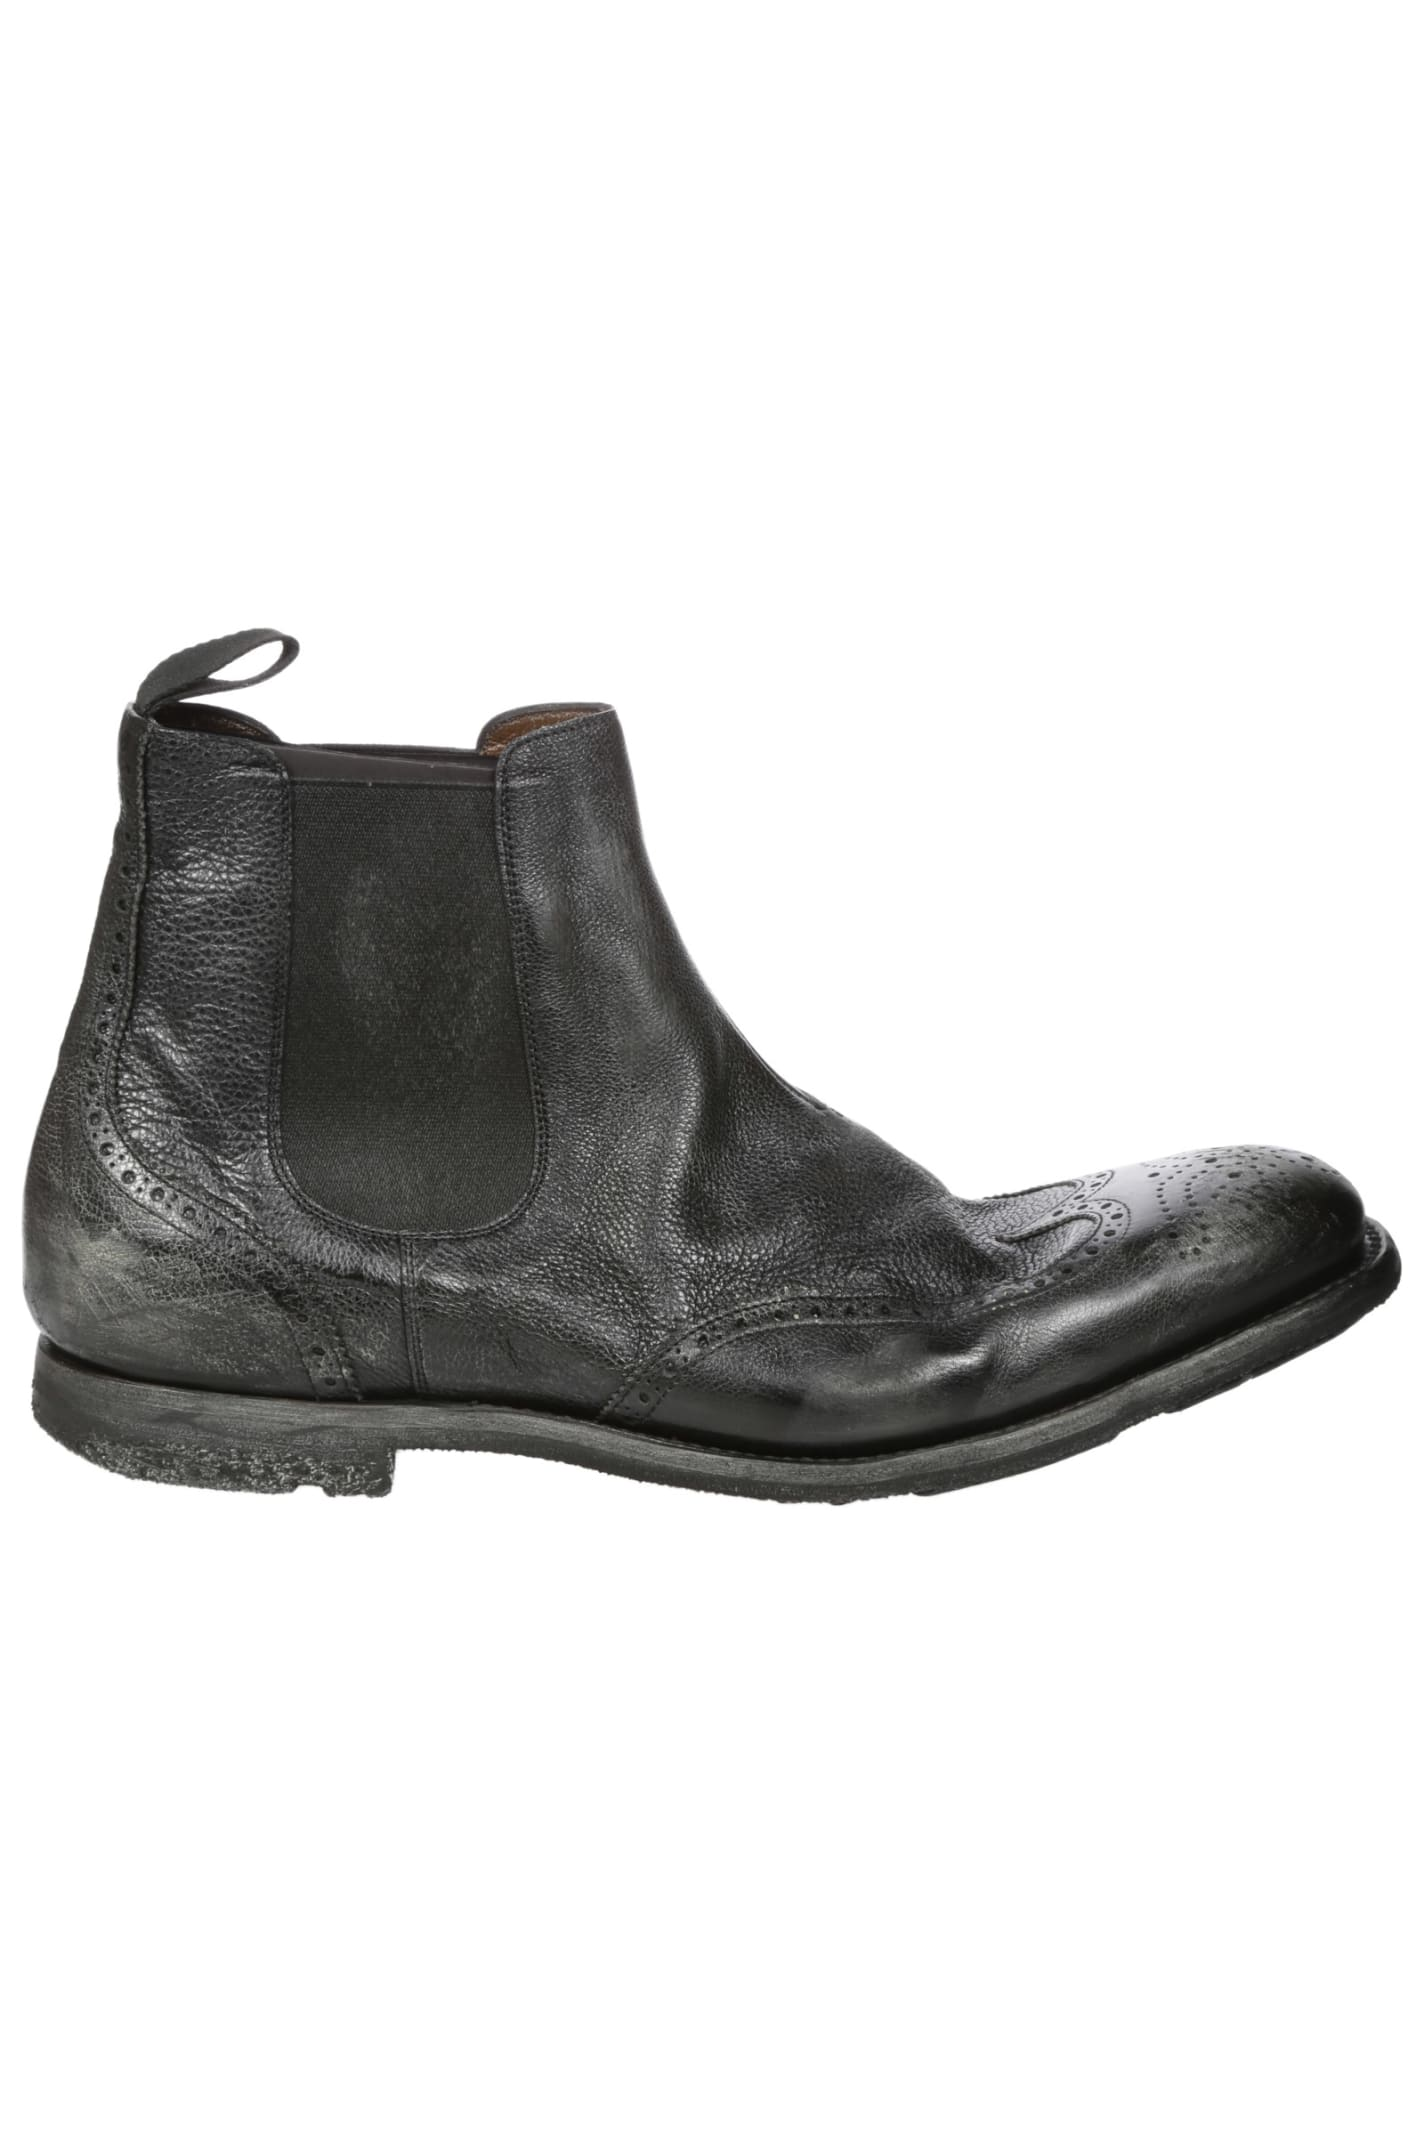 Church's KETSBY 1930 ANKLE BOOTS